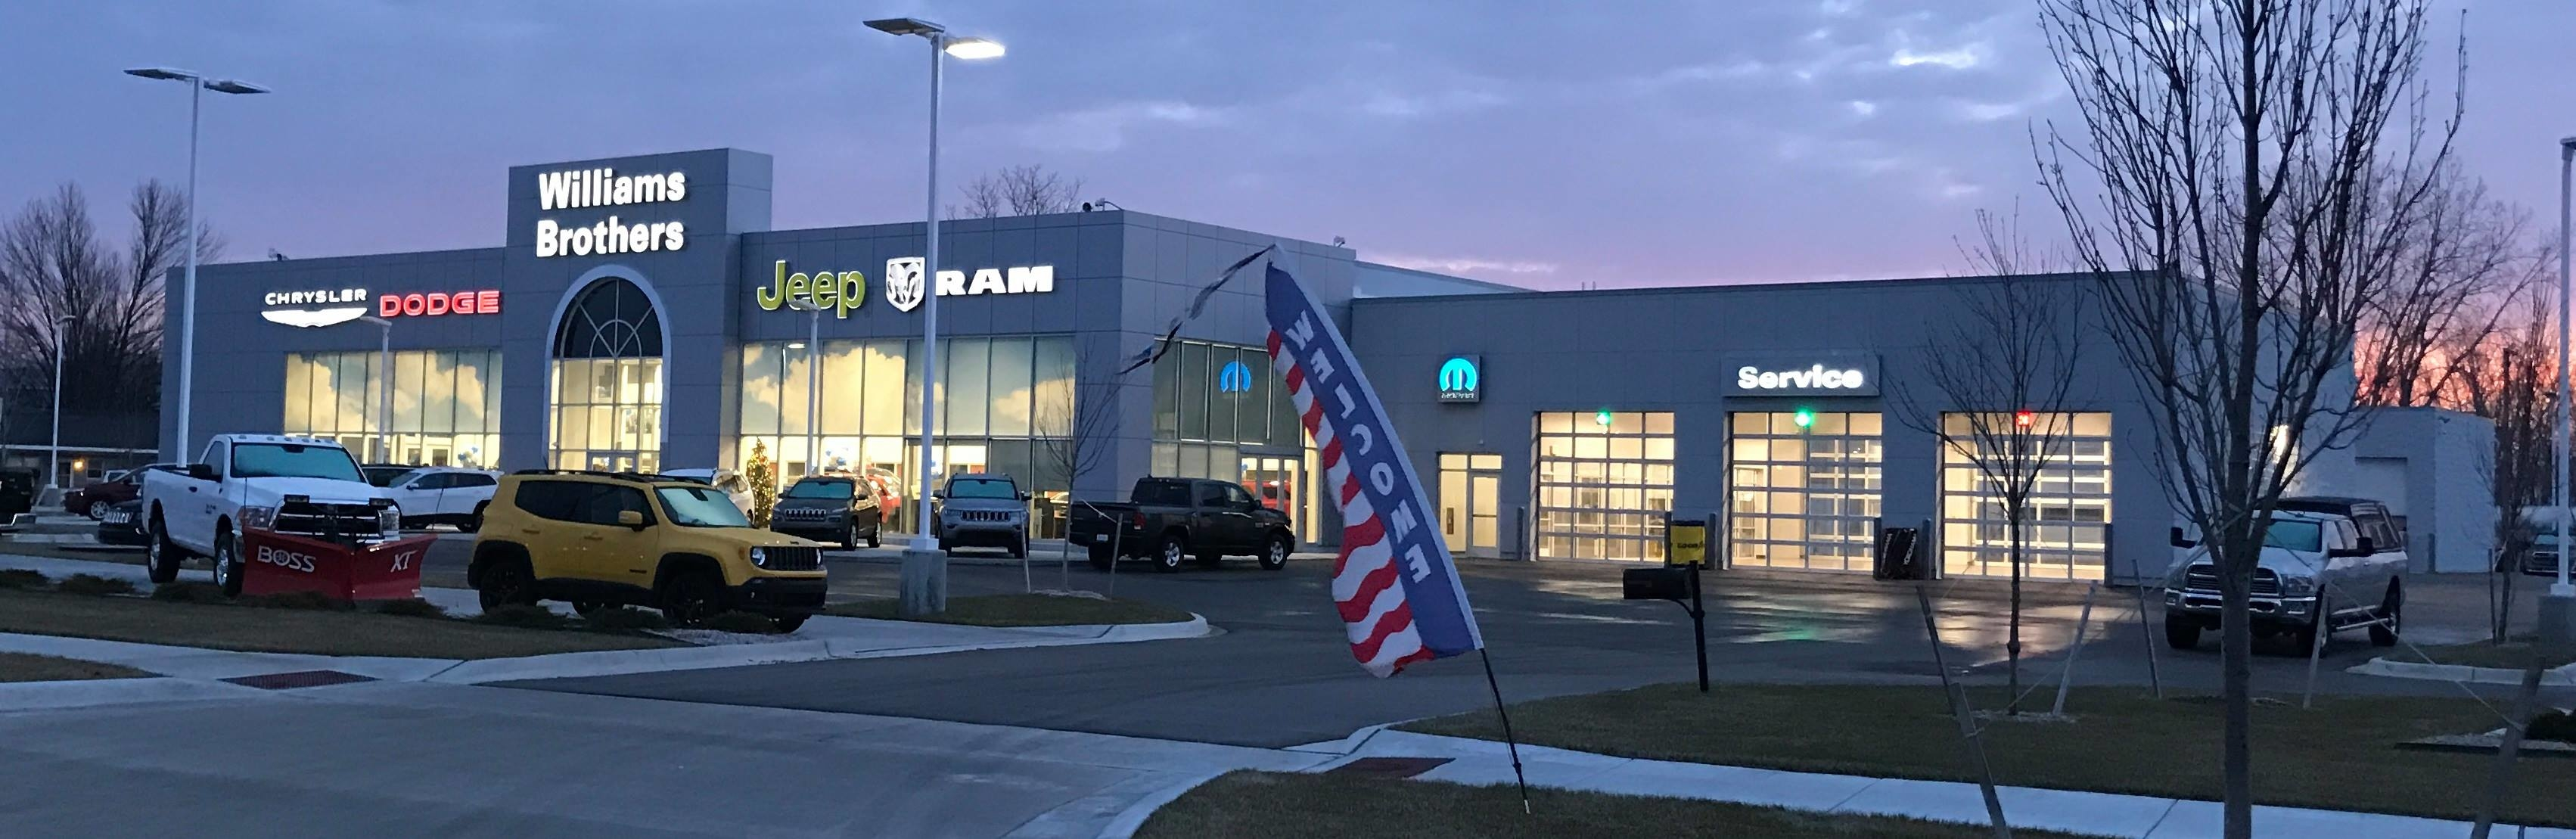 Williams Brothers Chrysler Dodge Jeep Ram of Dundee image 0